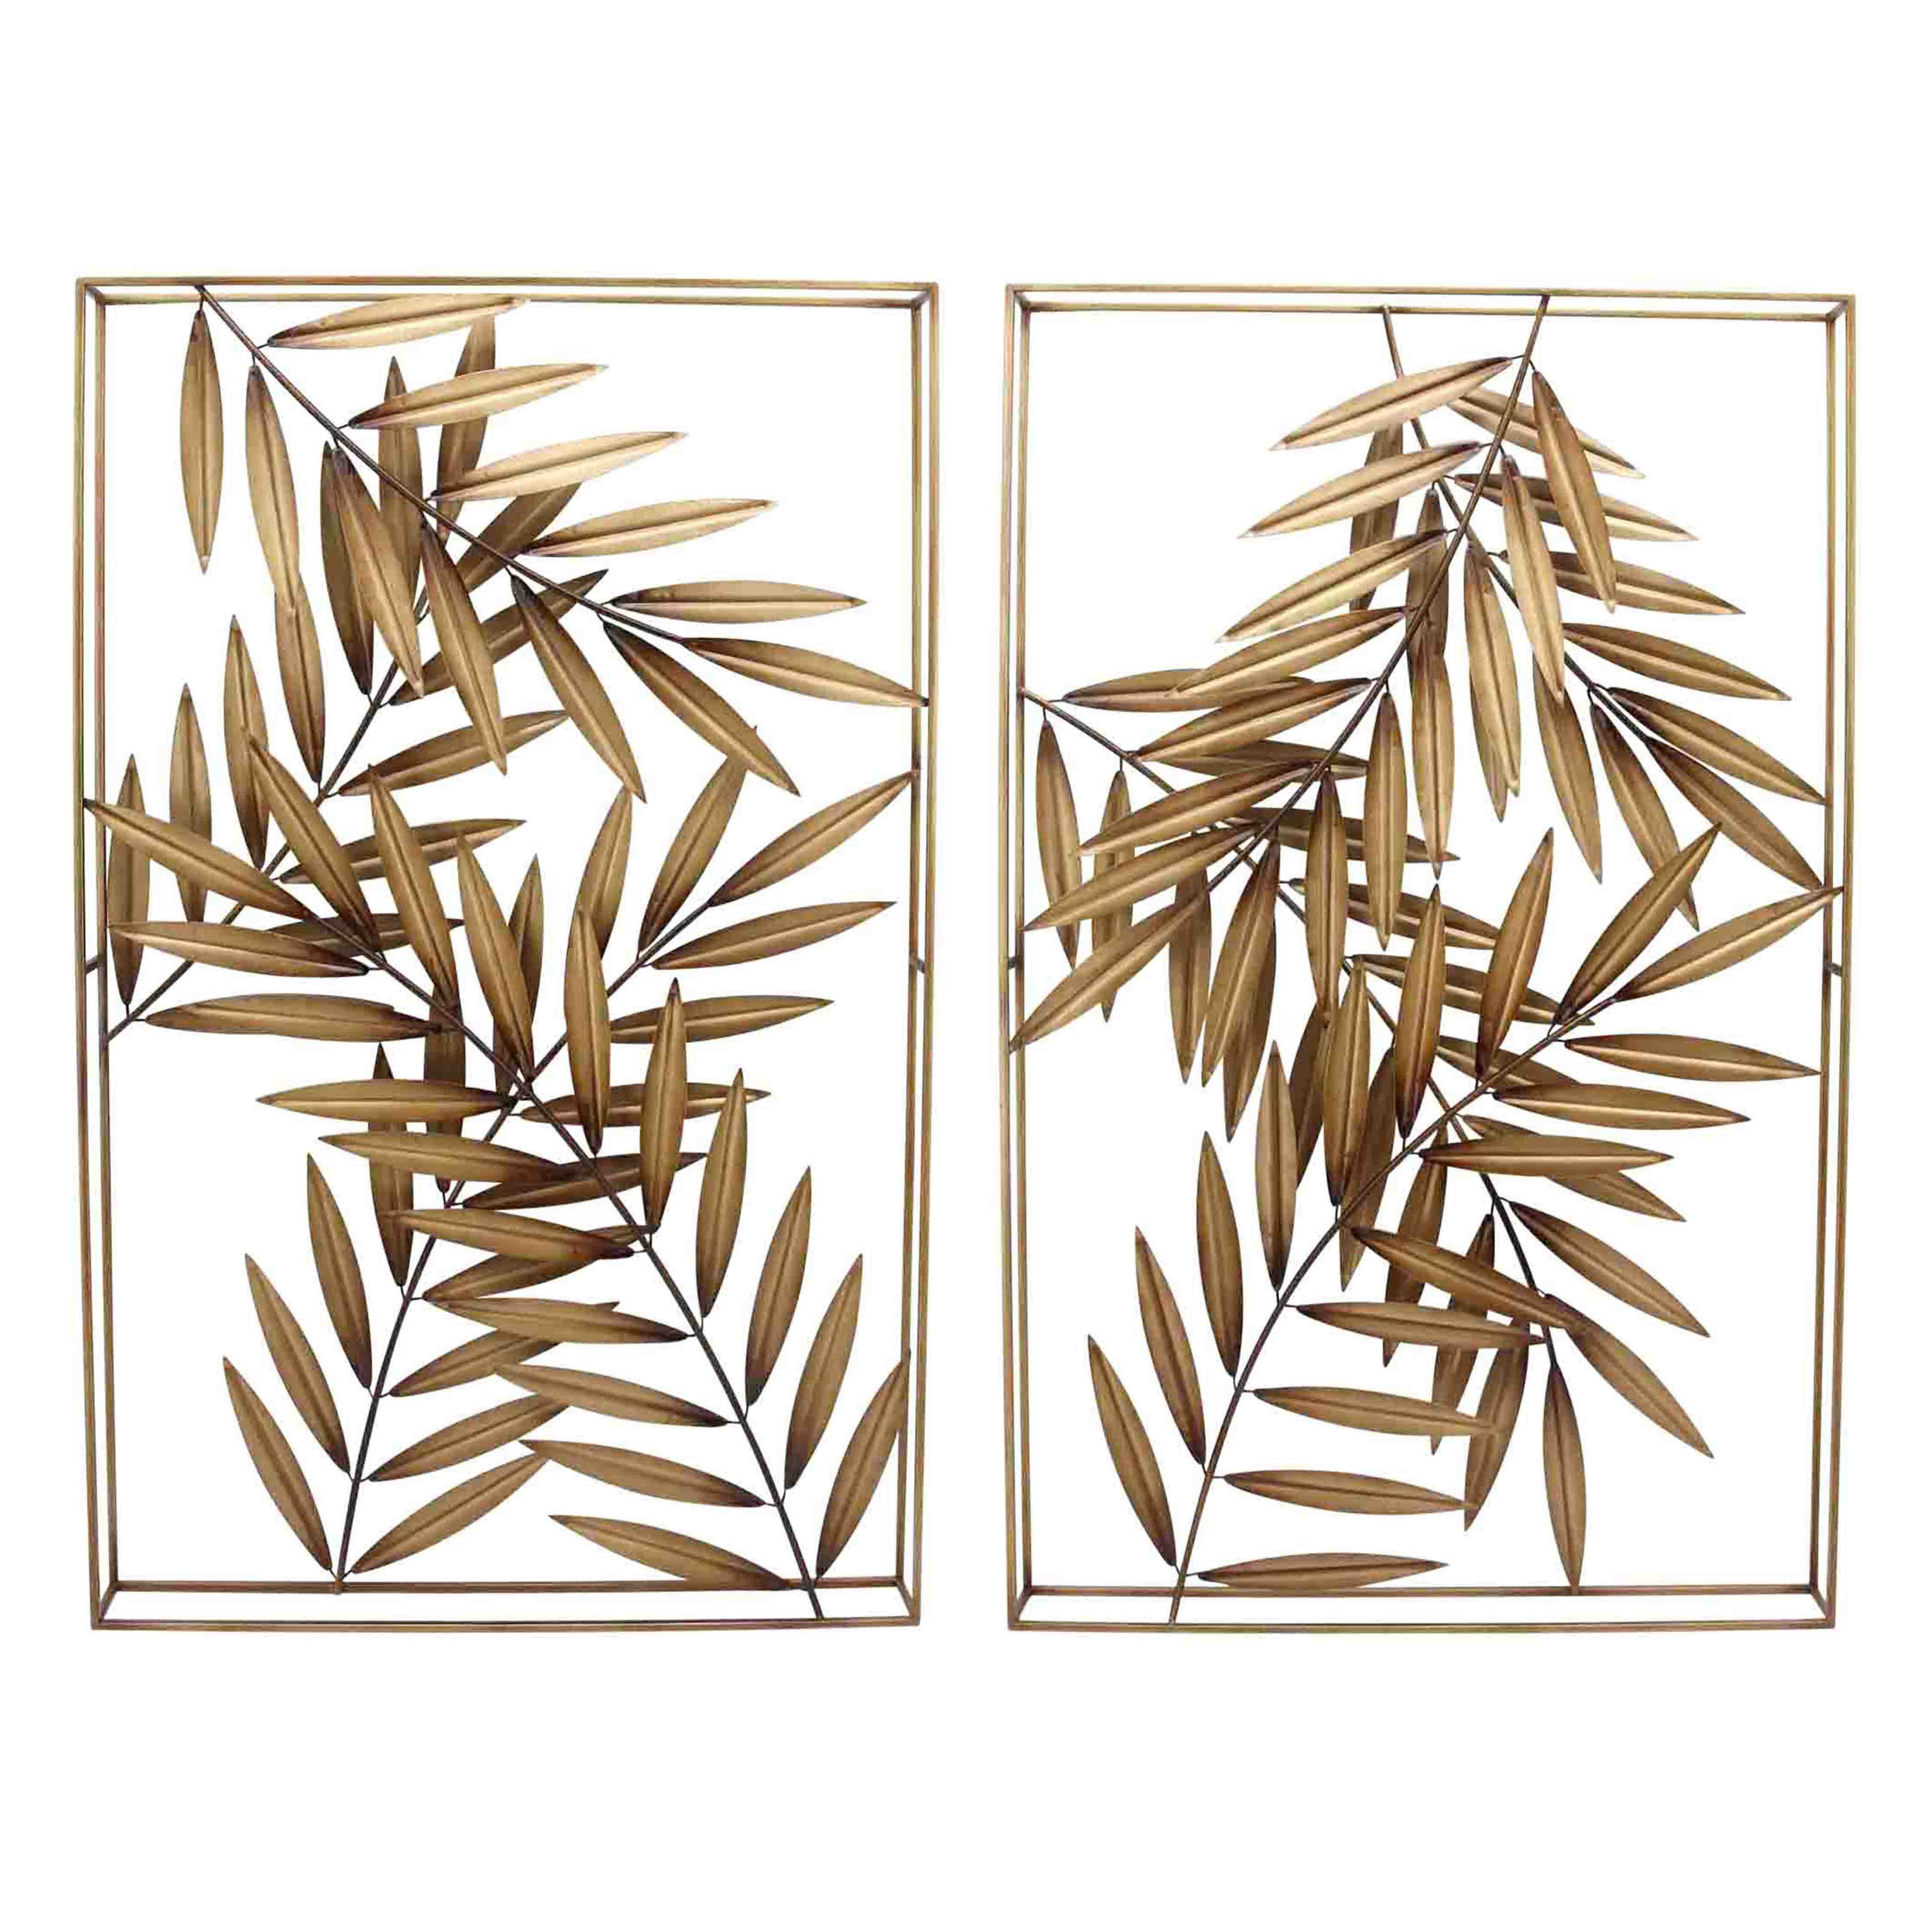 decor wall cor sculptured metal interior d leaf leaves pin pinterest design